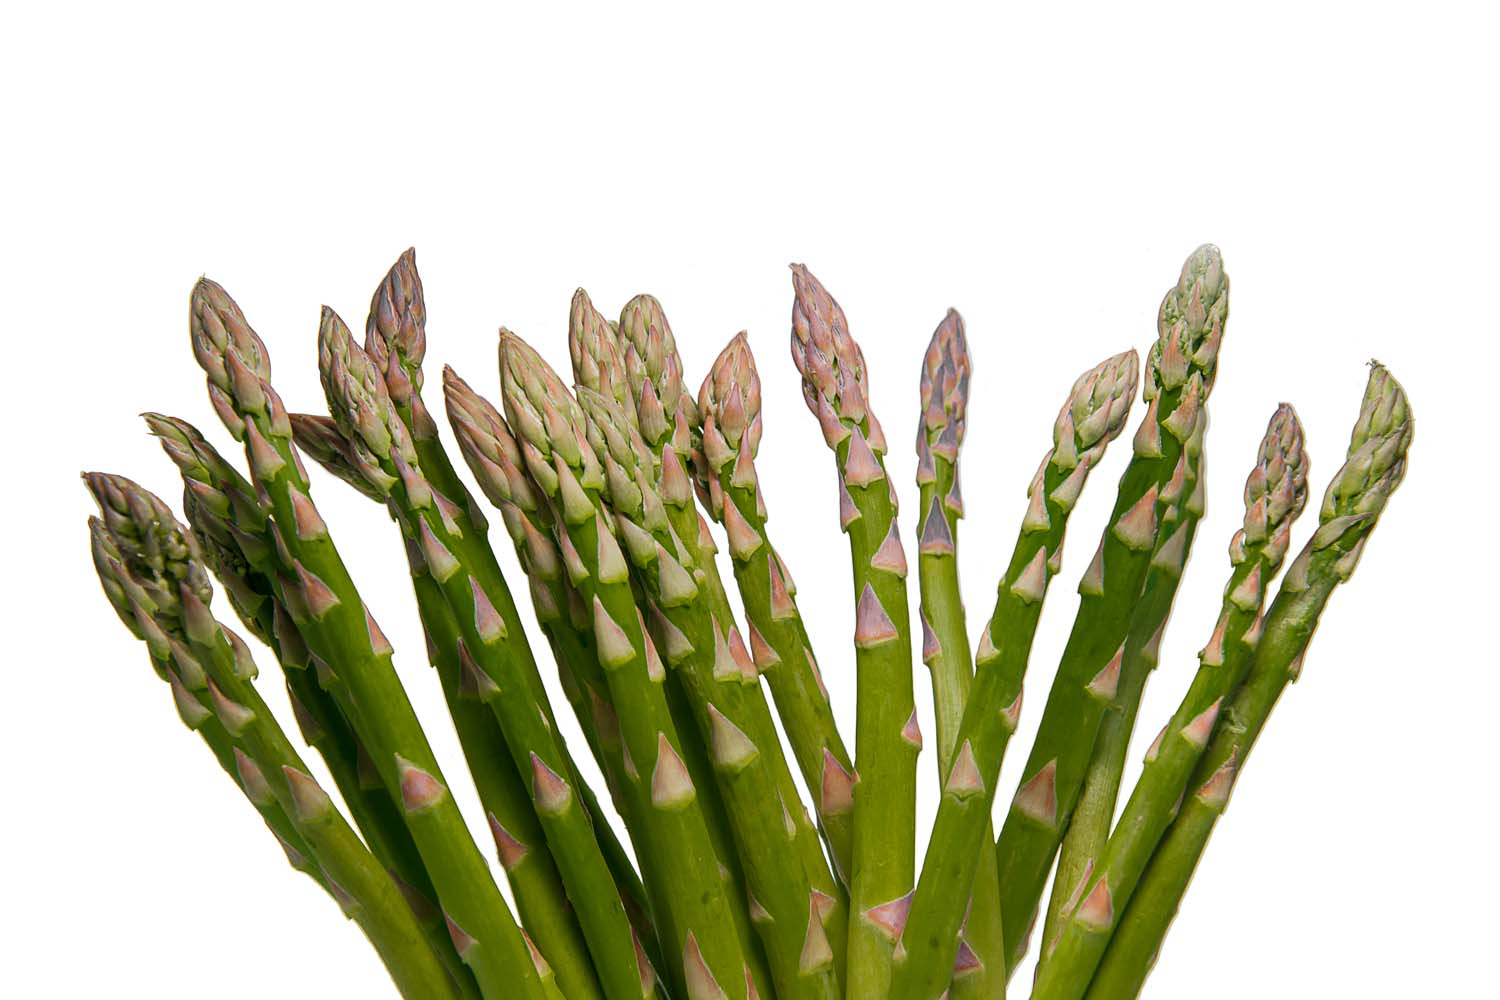 Crowds of Asparagus